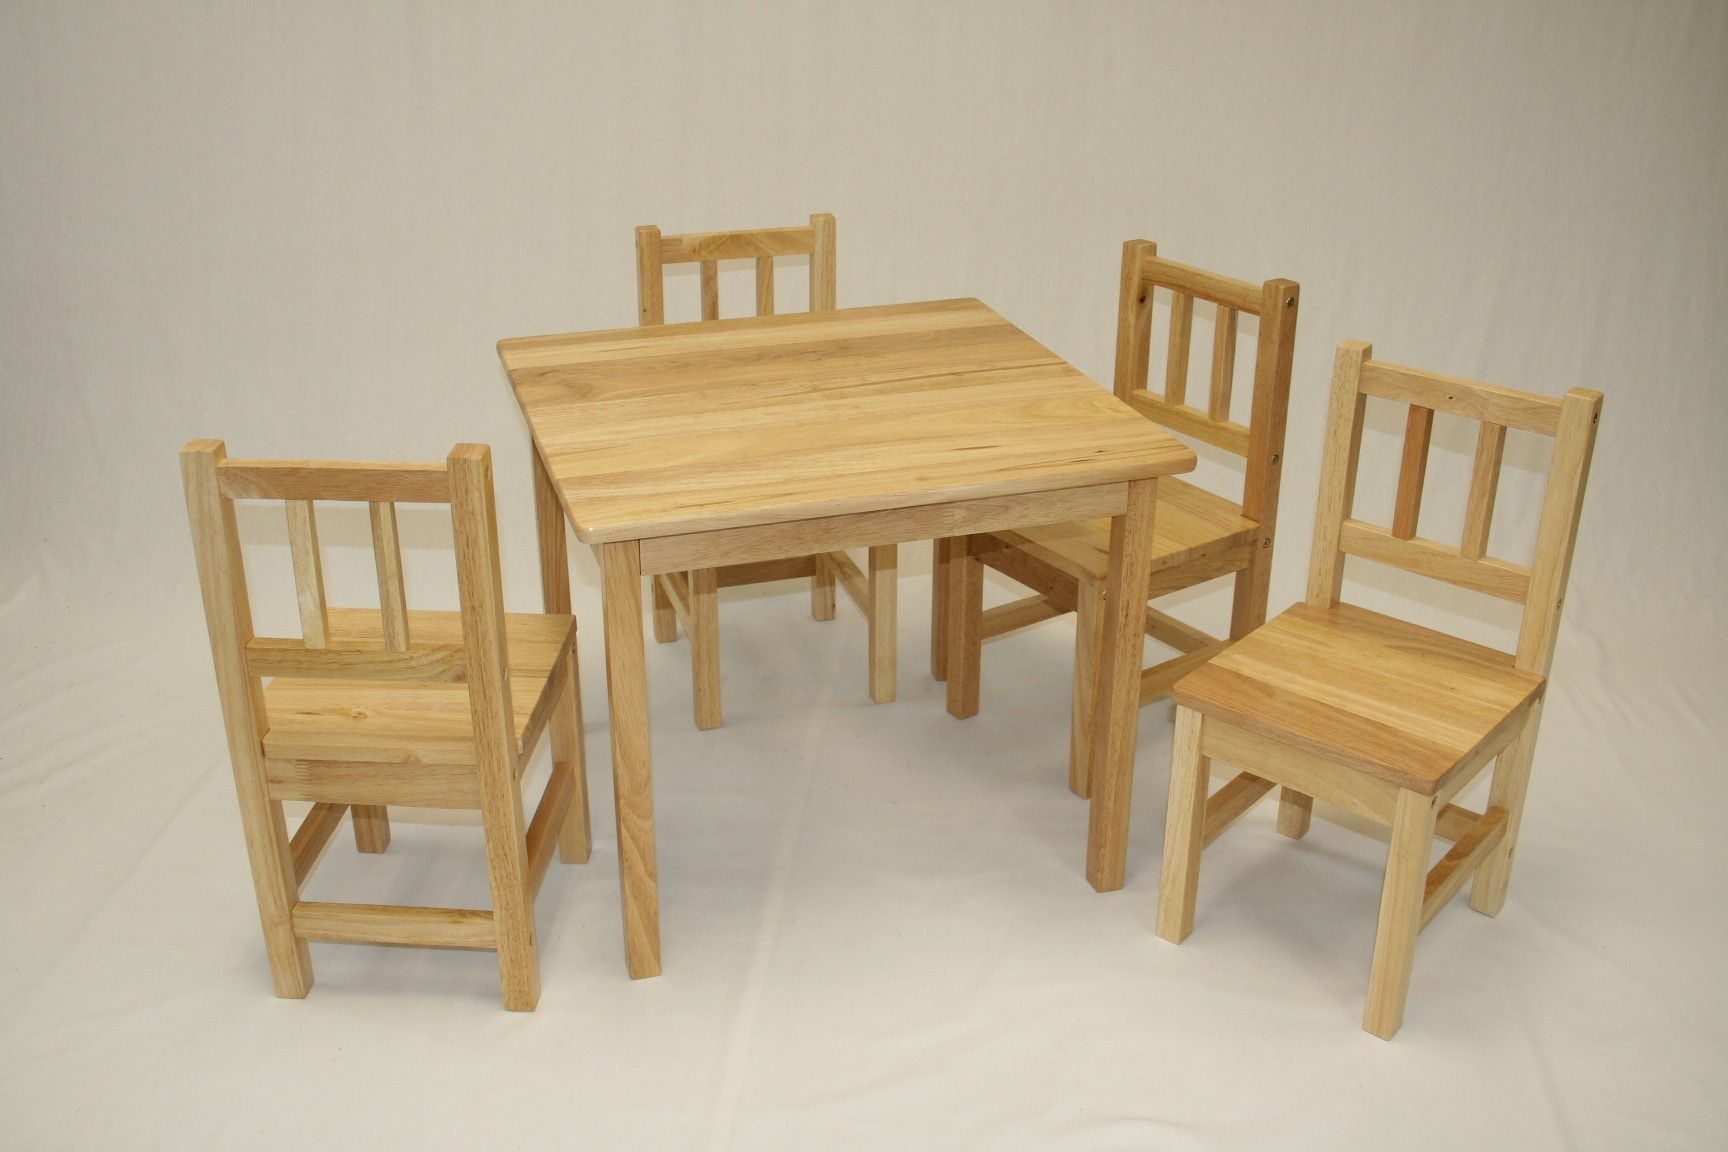 Kids 5 Piece Table And Chair Set Kids Wooden Table Kids Table